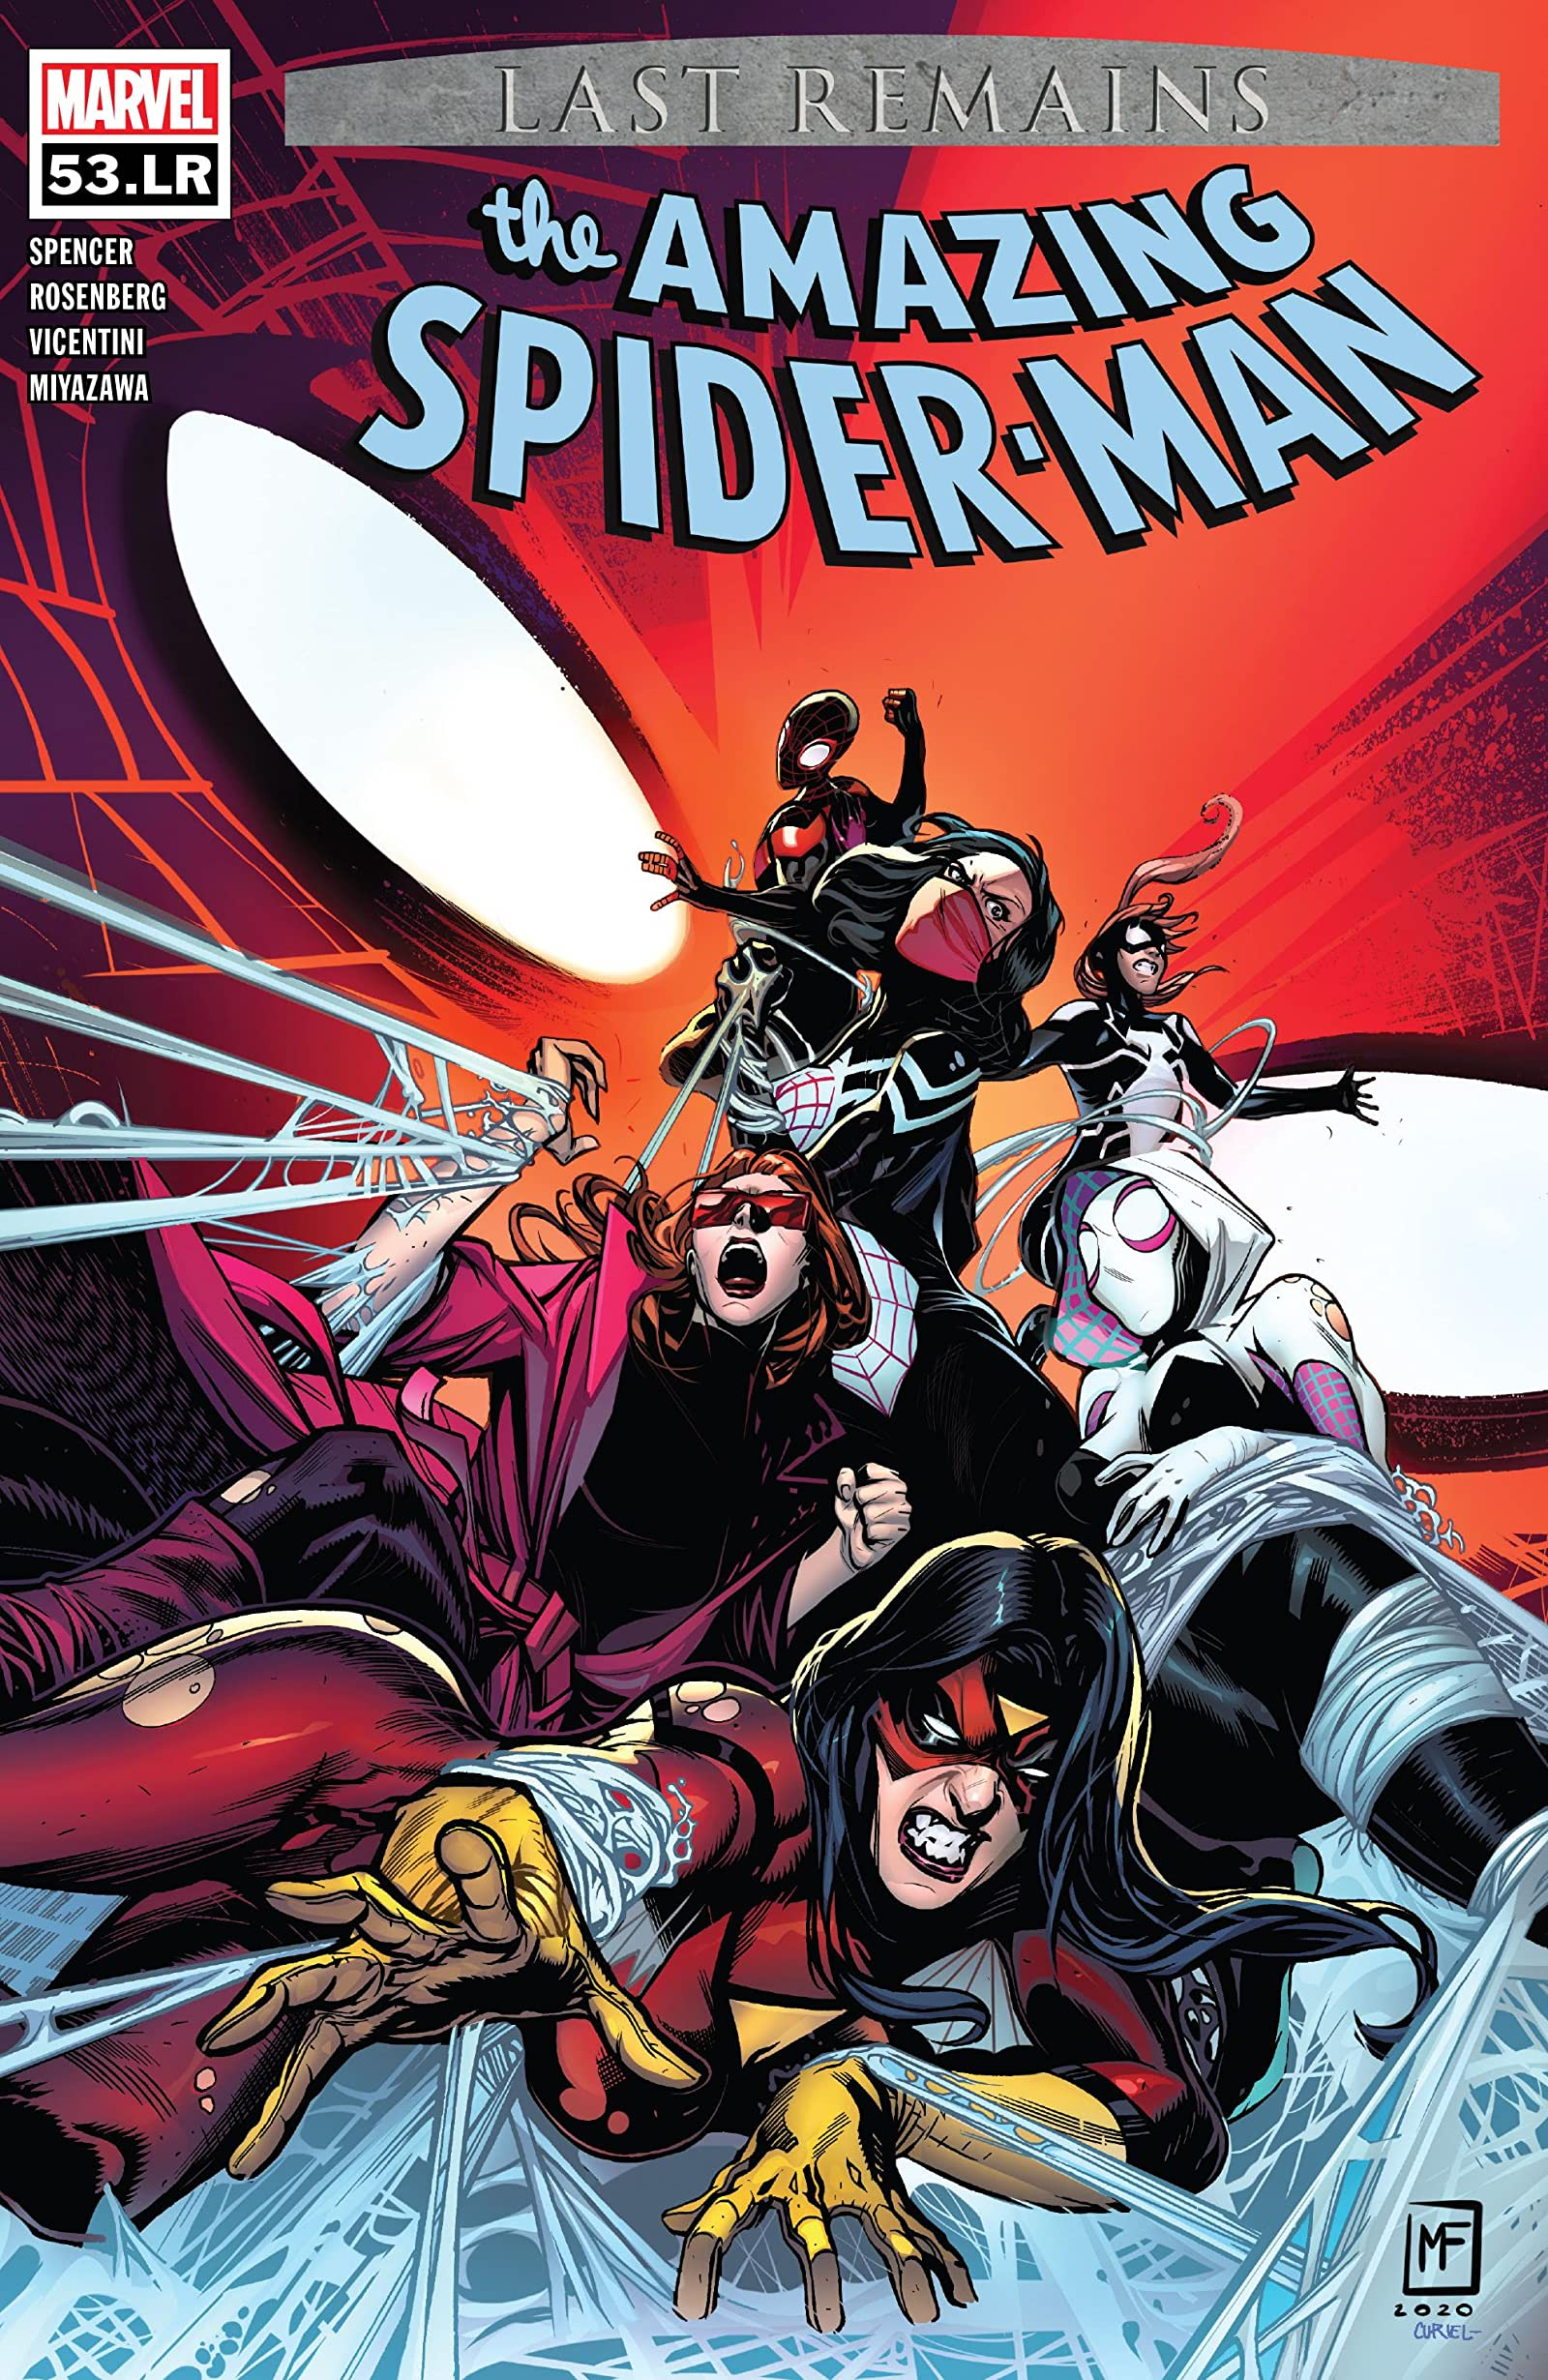 Amazing Spider-Man Vol 5 53.LR